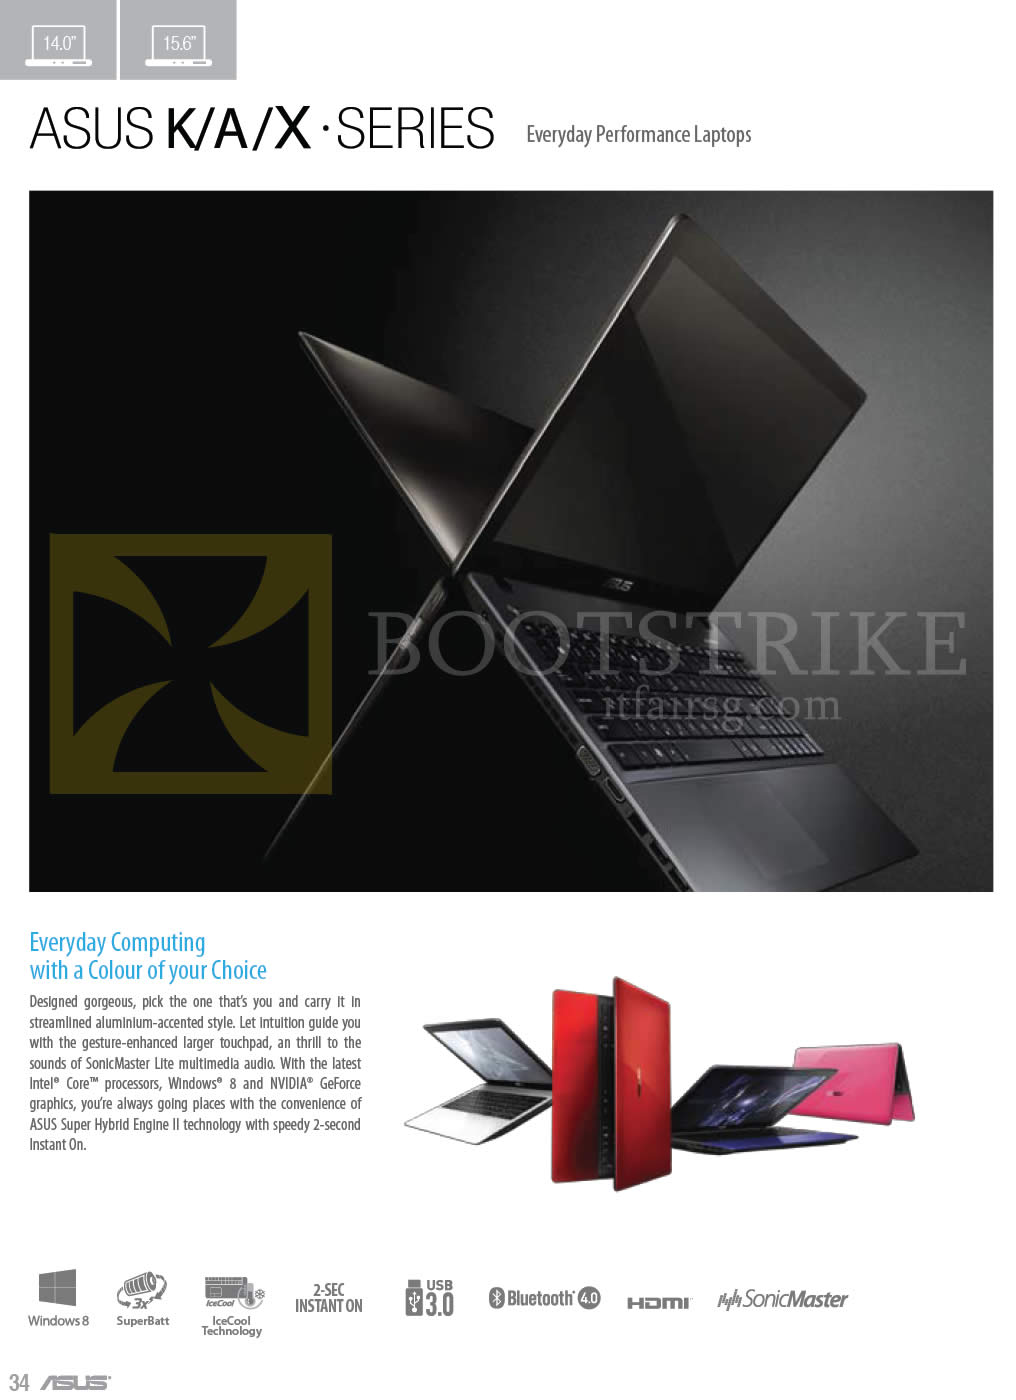 COMEX 2013 price list image brochure of ASUS Notebooks K, A, X Series